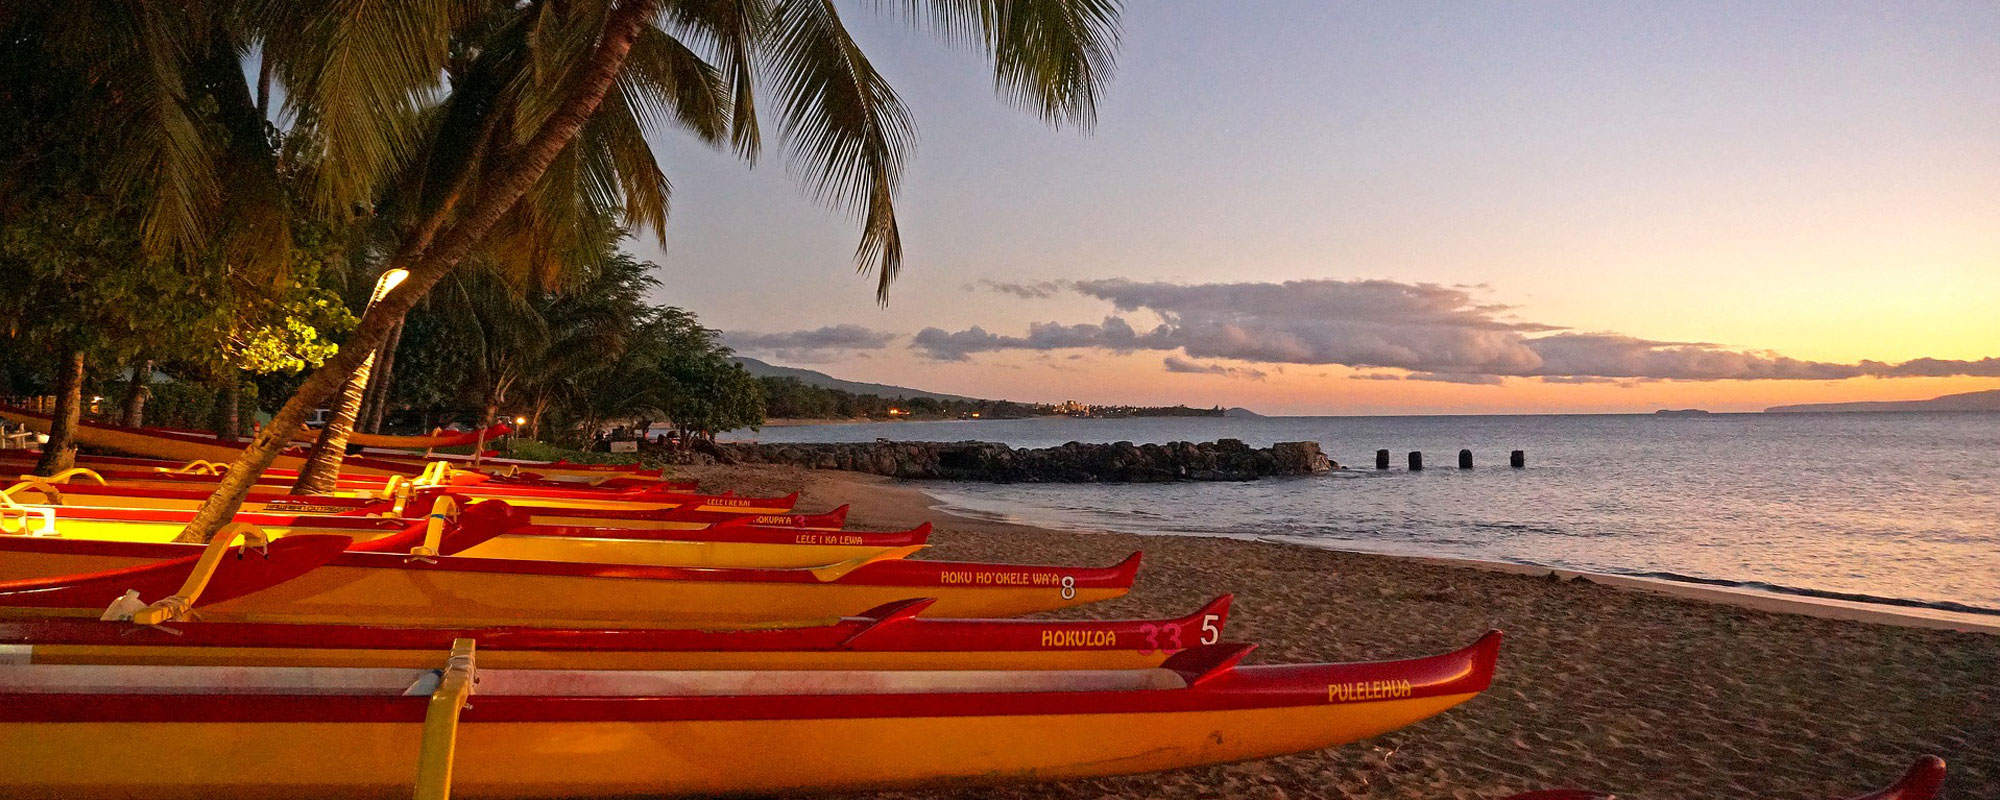 Maui Real Estate Roos realty